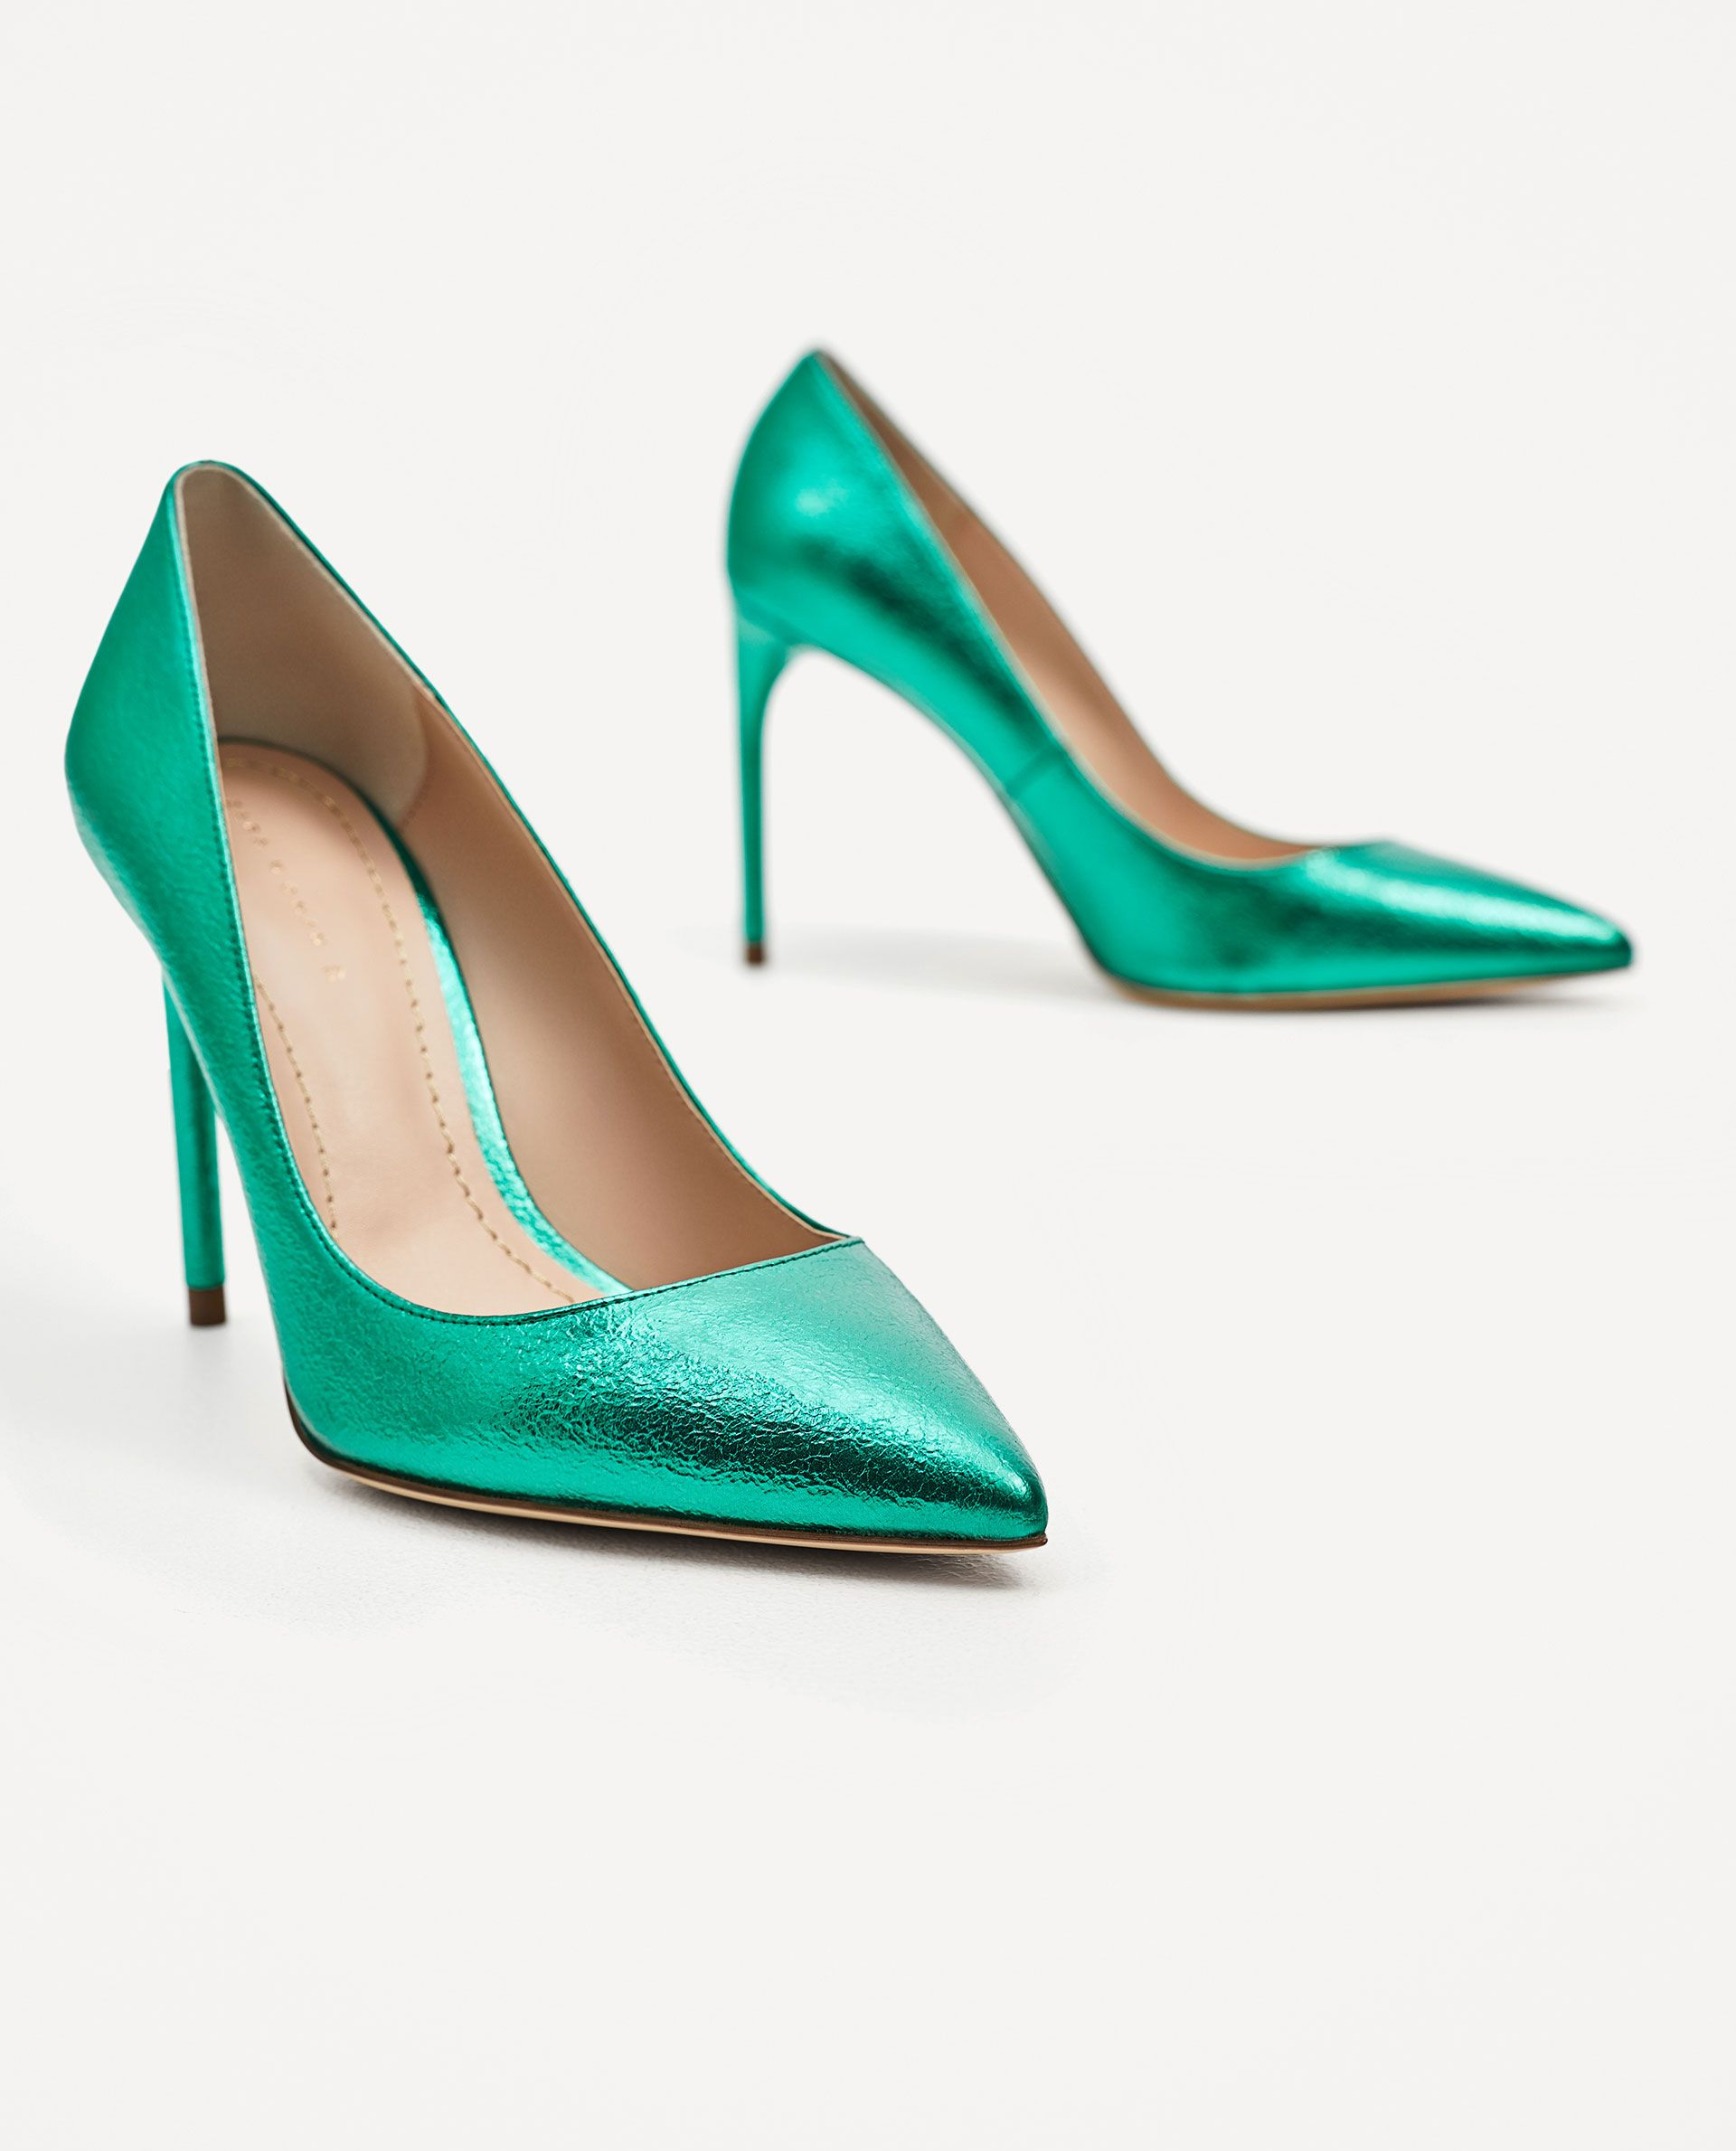 f85adb1233c ZARA - WOMAN - METALLIC GREEN COURT SHOES